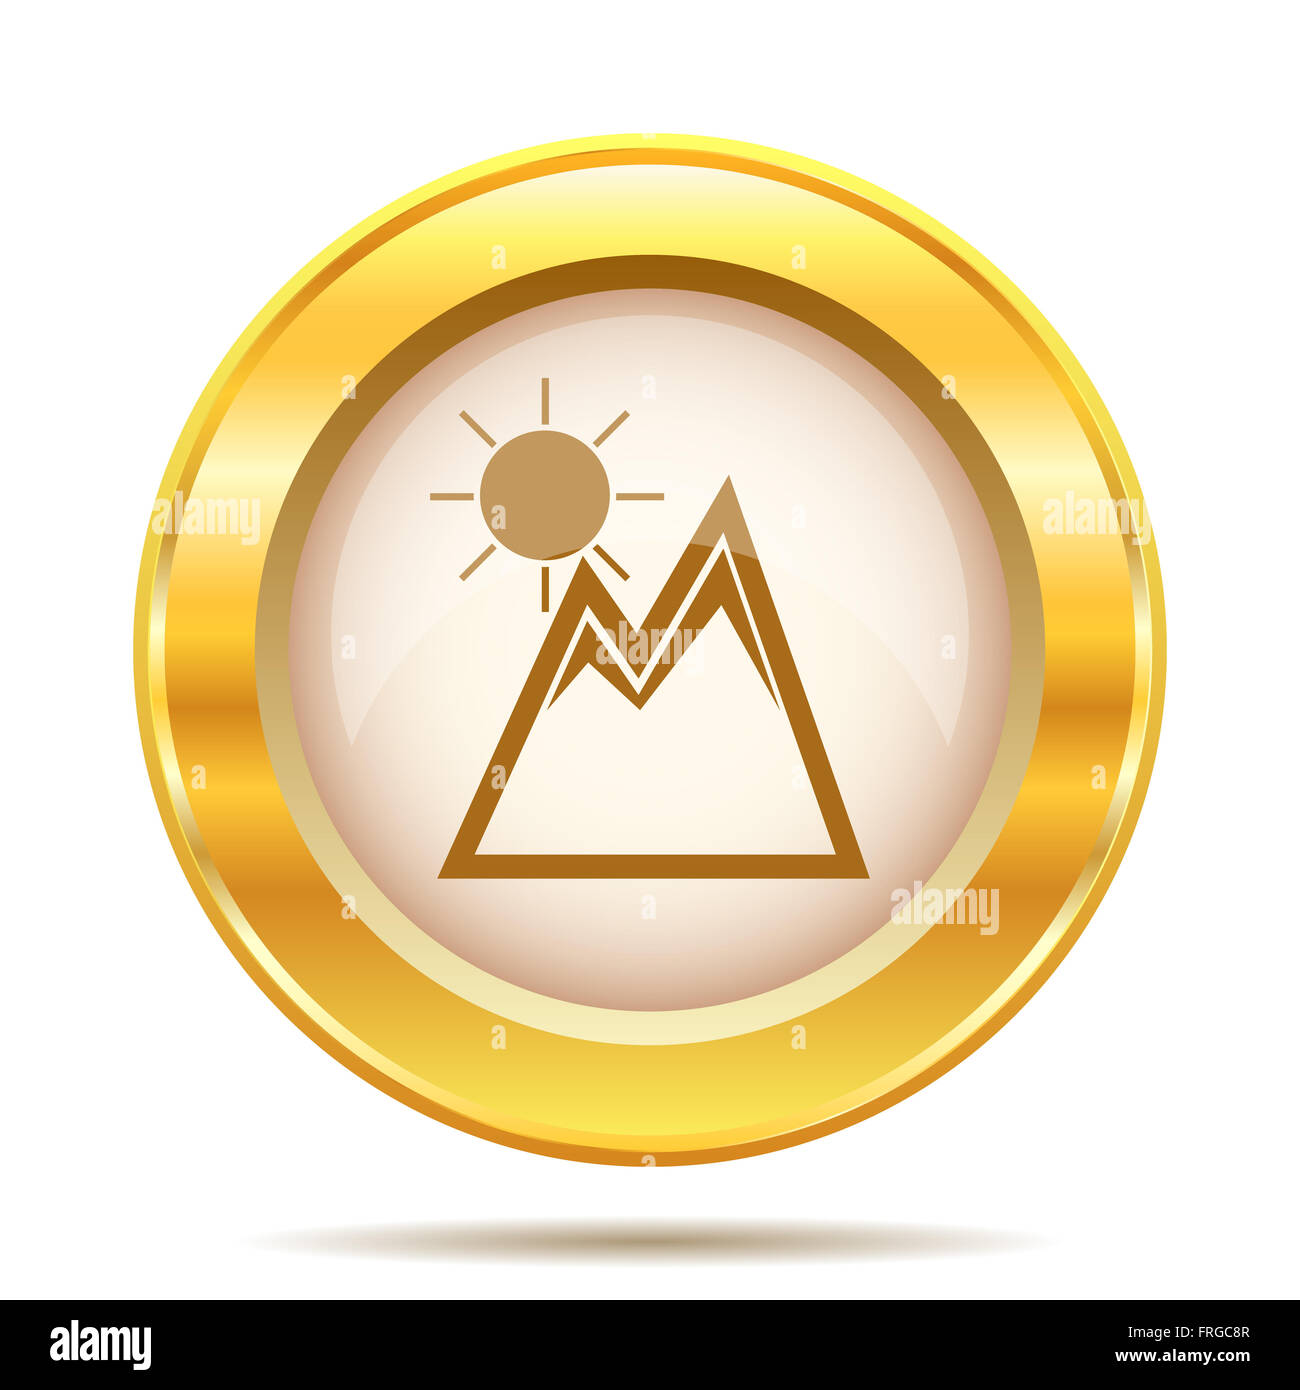 Round glossy icon with brown design on gold background - Stock Image